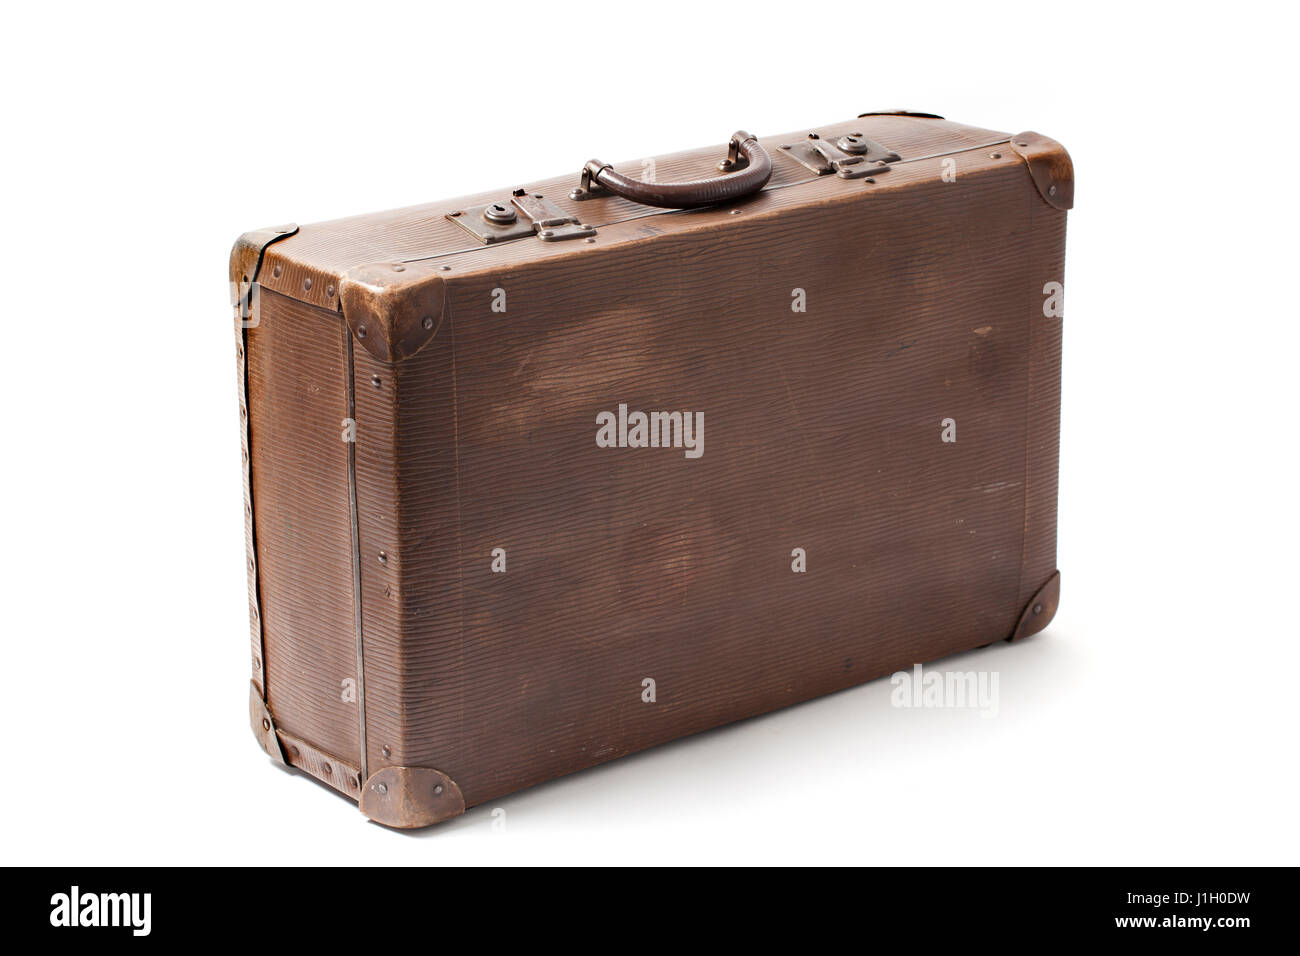 Closed obsolete antiquated and used suitcase stands isolated on white background. - Stock Image